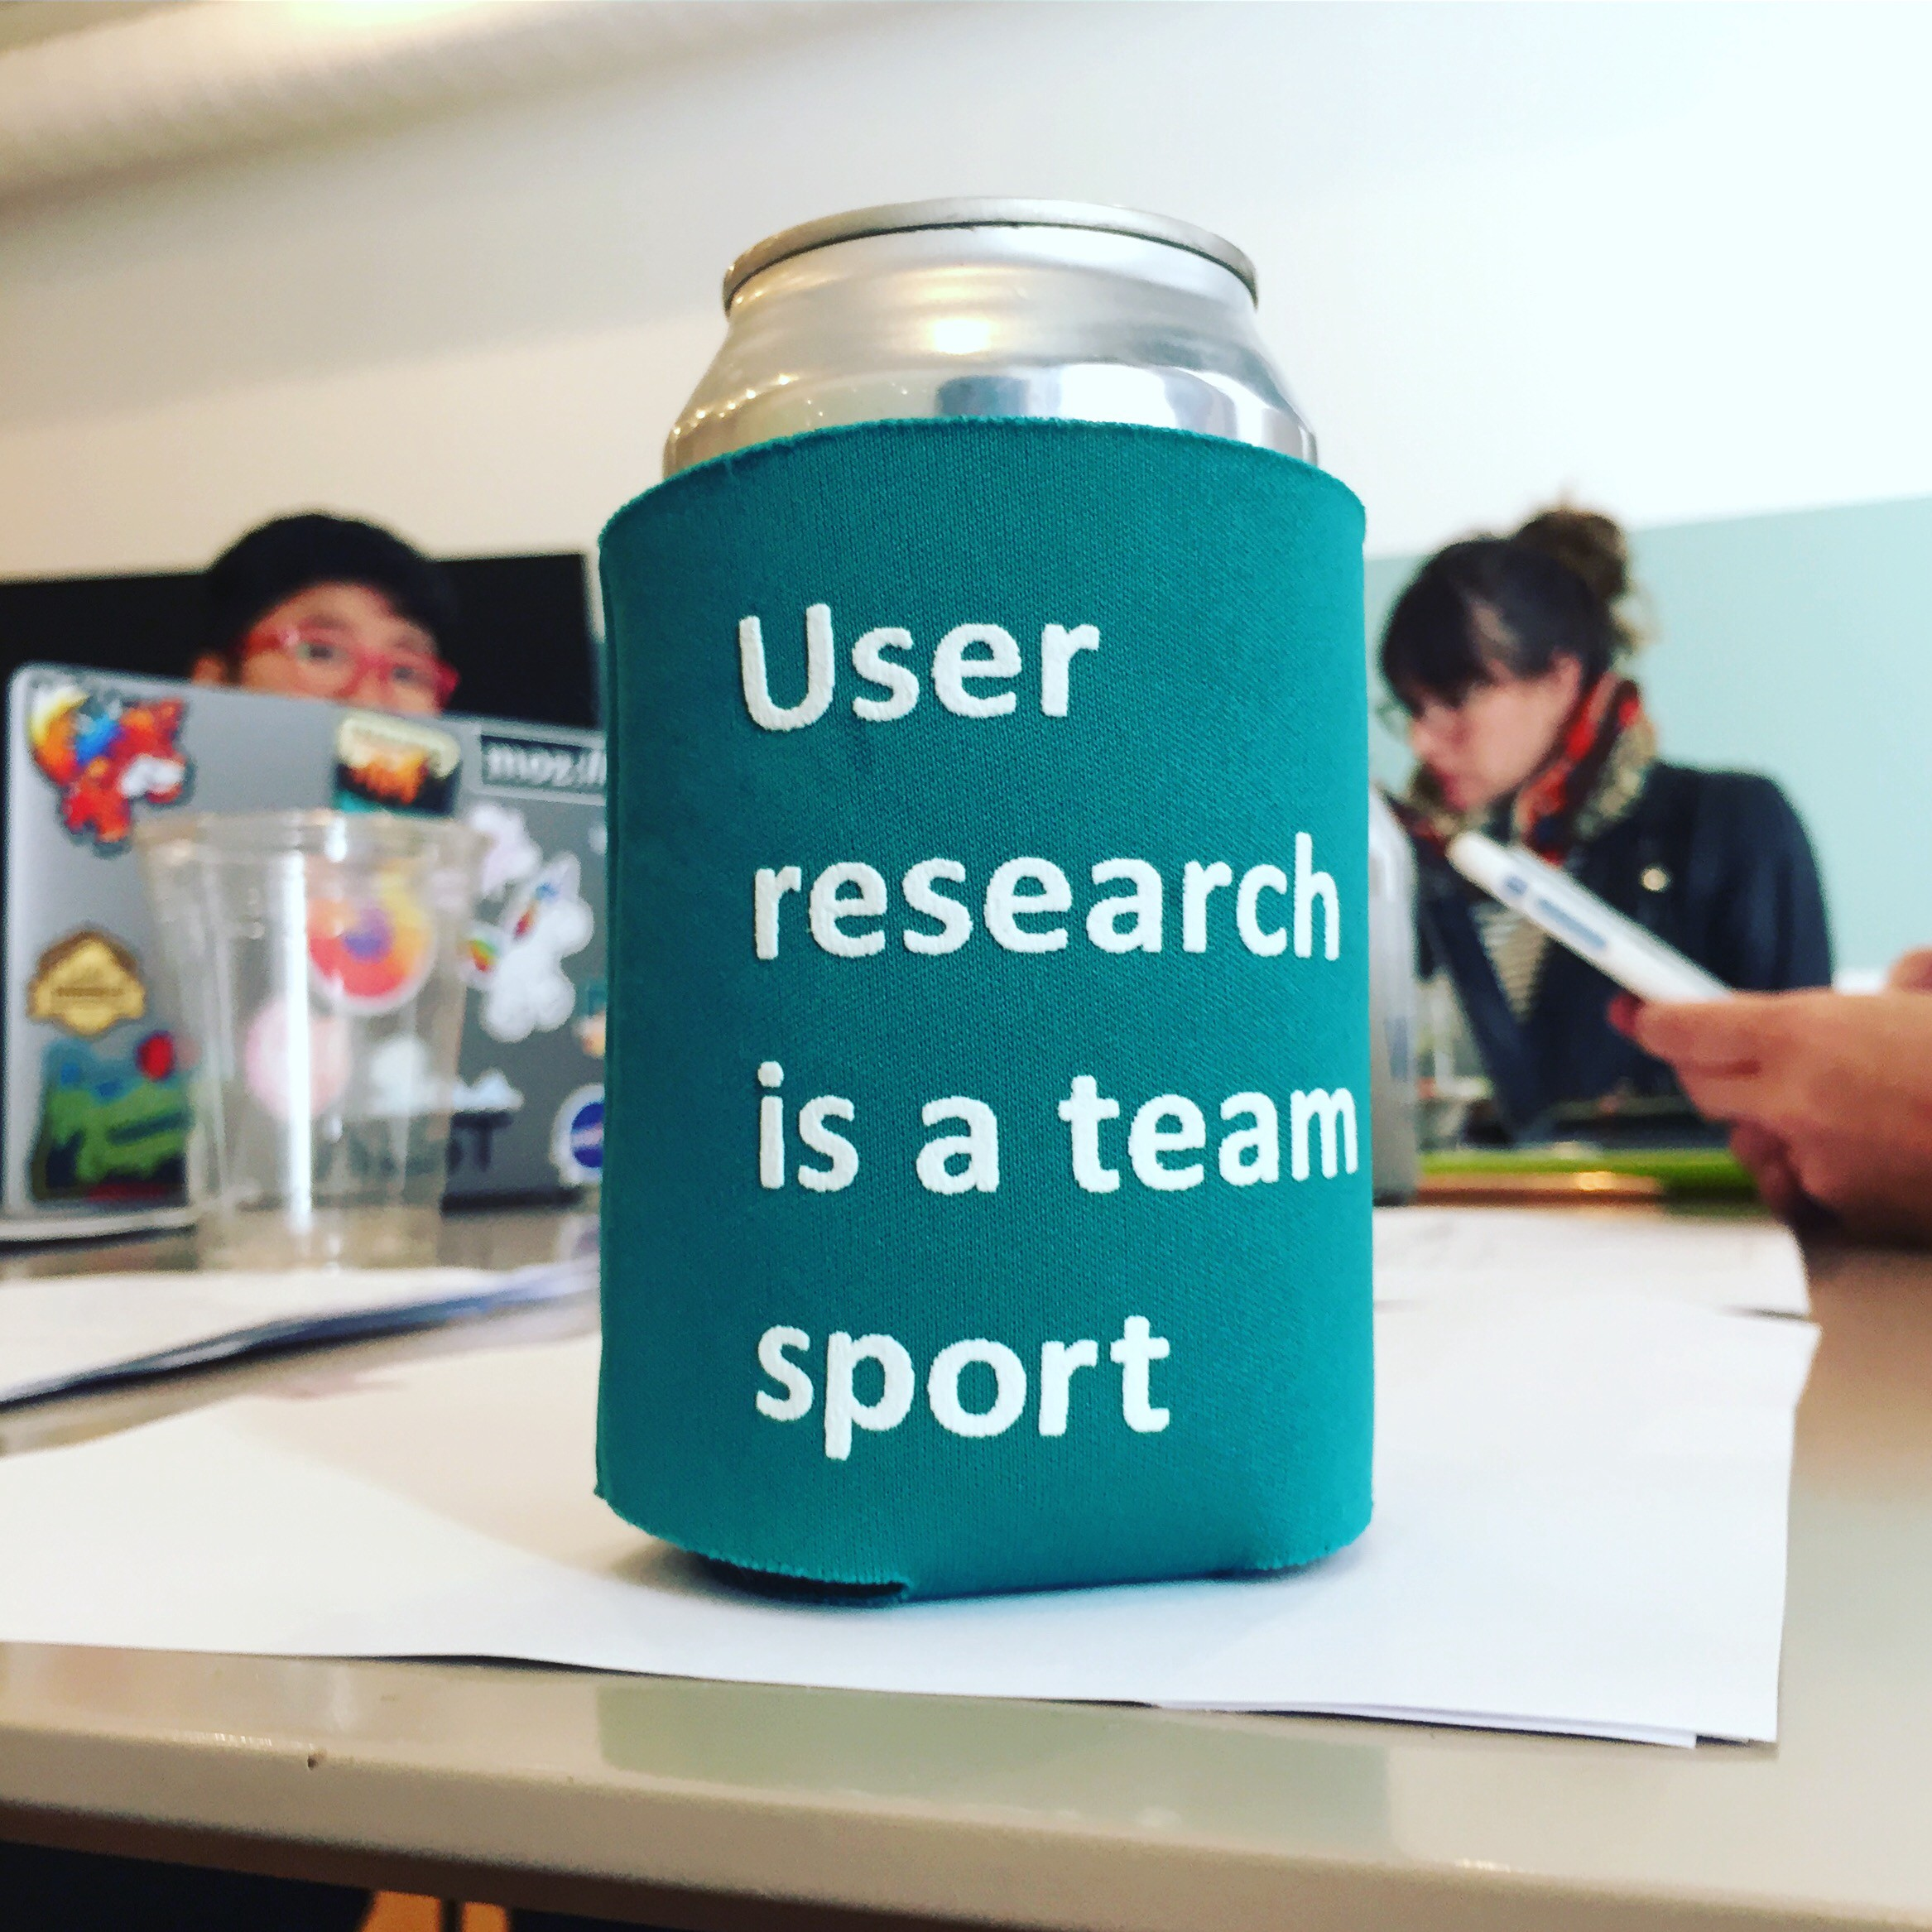 """A soda can in a coozy that says """"User research is a team sport,"""" sitting on a table with people & laptops in the background."""